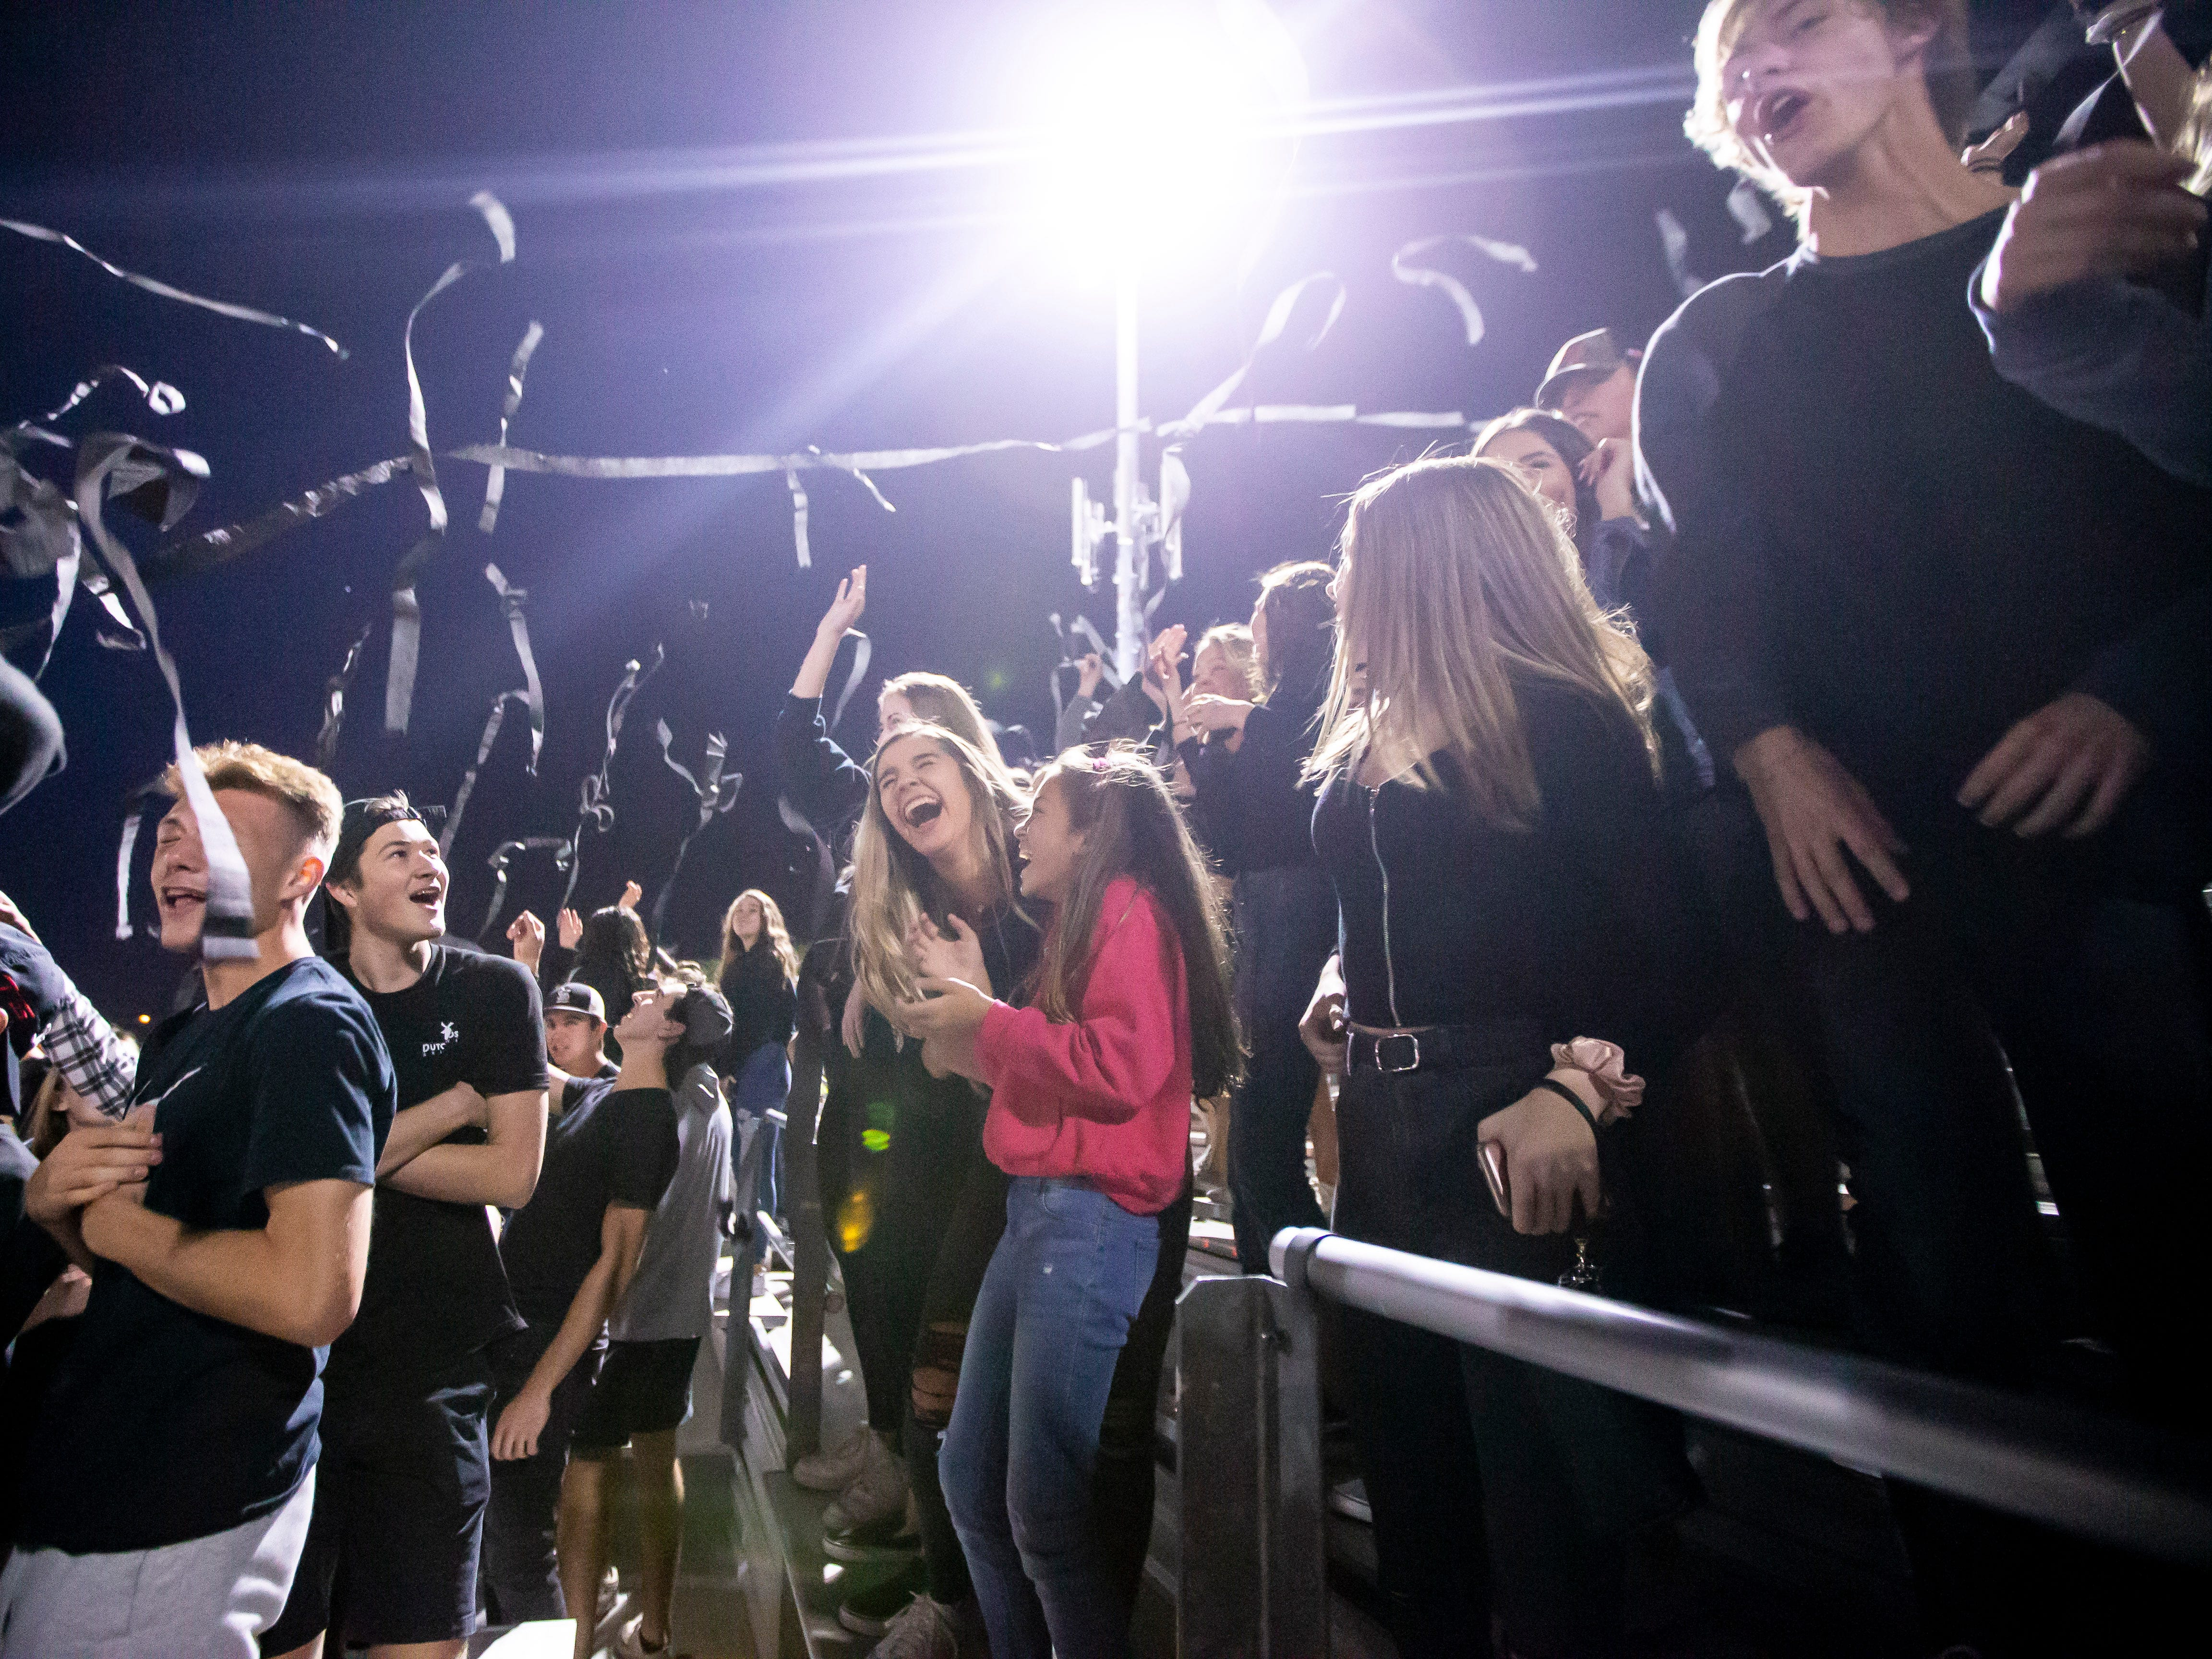 Pinnacle student section during the playoff game against the Red Mountain Mountain Lions at Pinnacle High School on Friday, November 9, 2018 in Phoenix, Arizona. #azhsfb